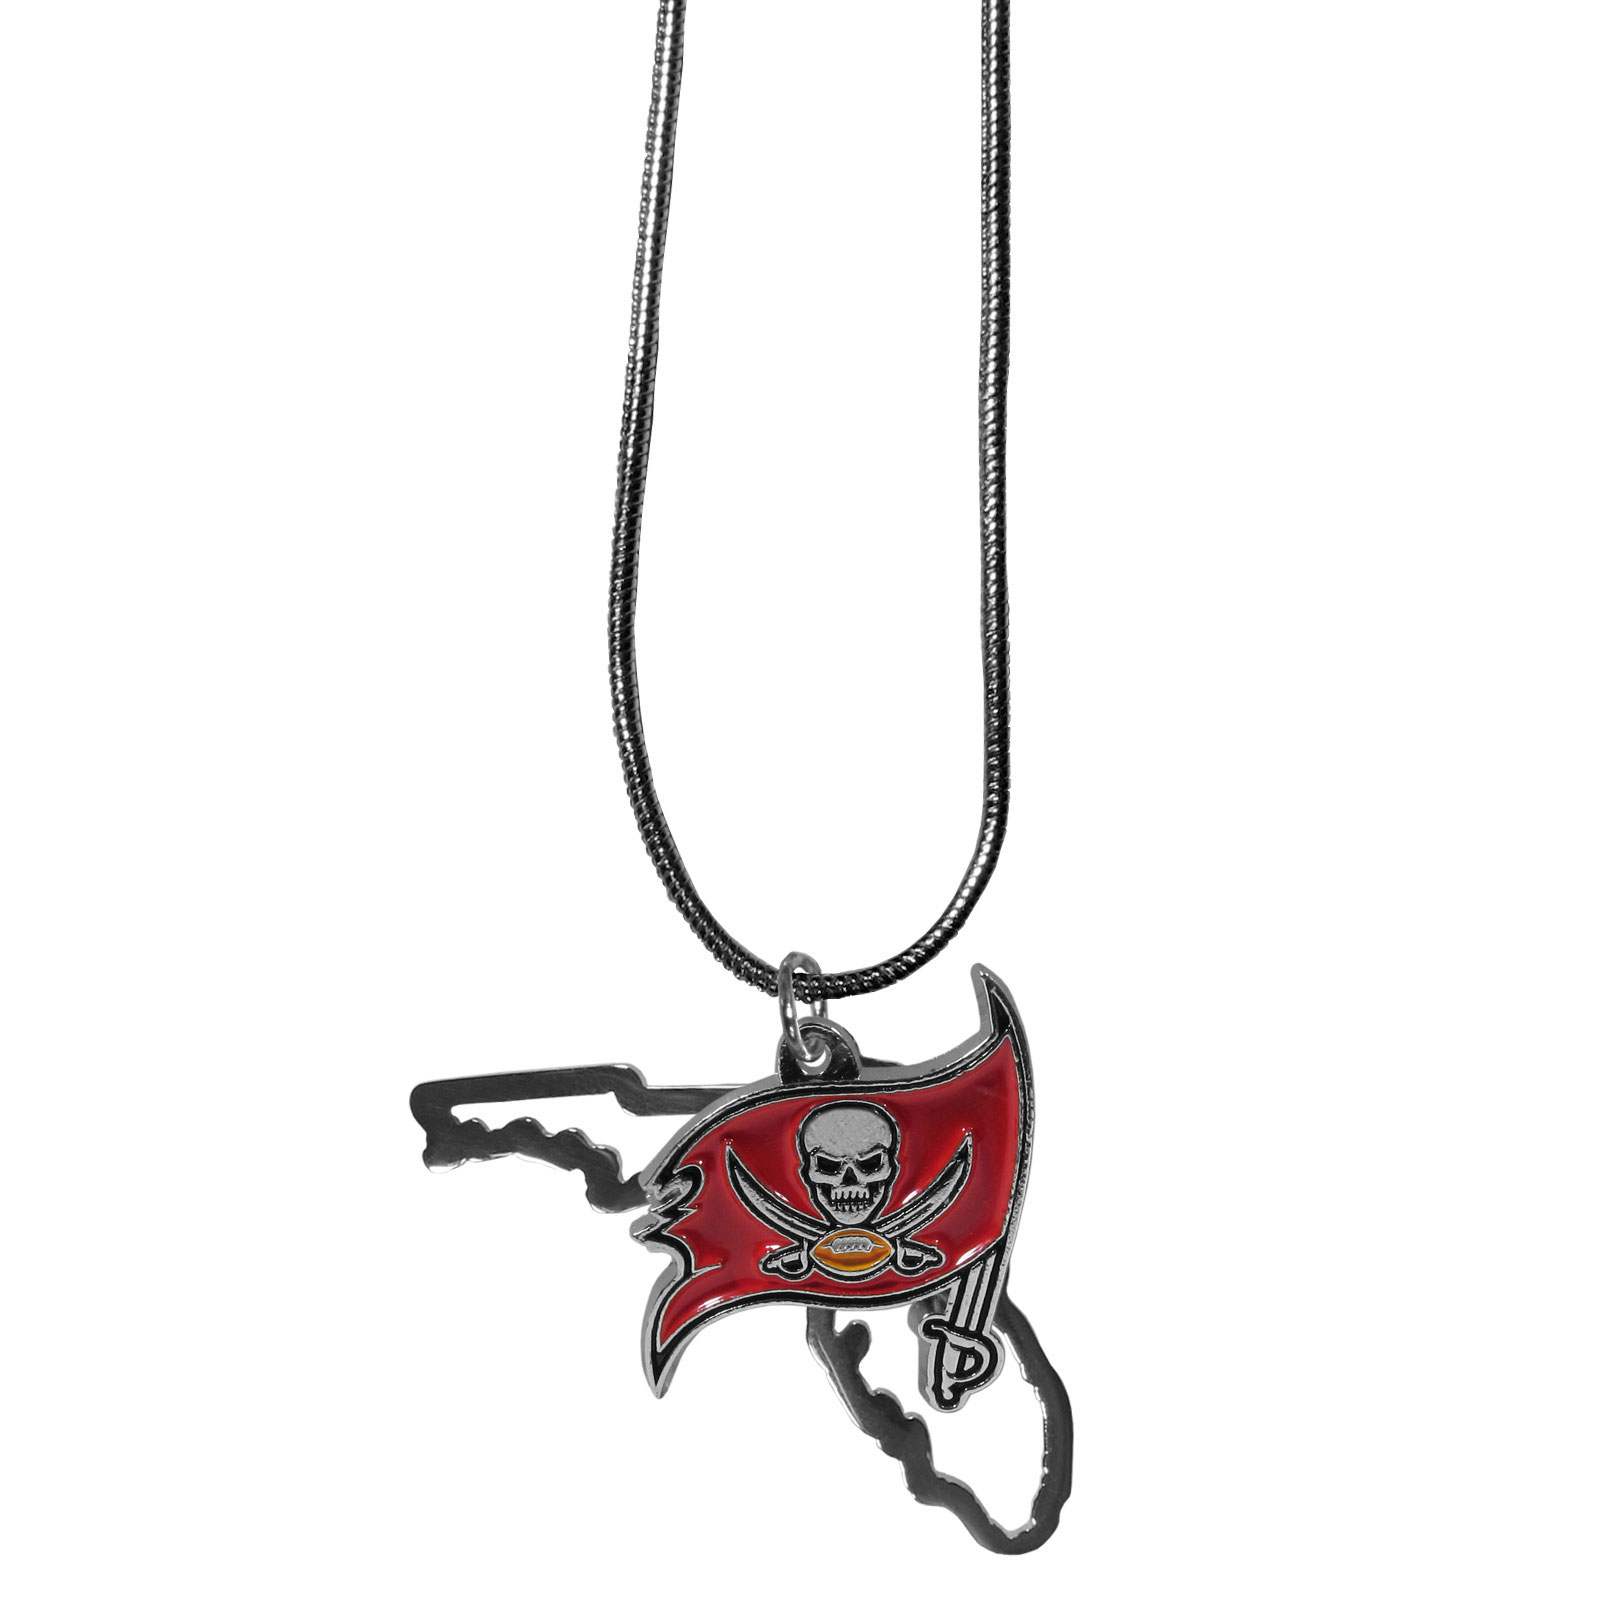 Tampa Bay Buccaneers State Charm Necklace - Get in on the trend! State themes are a trend that just keeps getting more popular and these necklaces take the state style and give it a sporty twist with a Tampa Bay Buccaneers added to the state outline charm. The come on a snake chain that is 22 inches long.